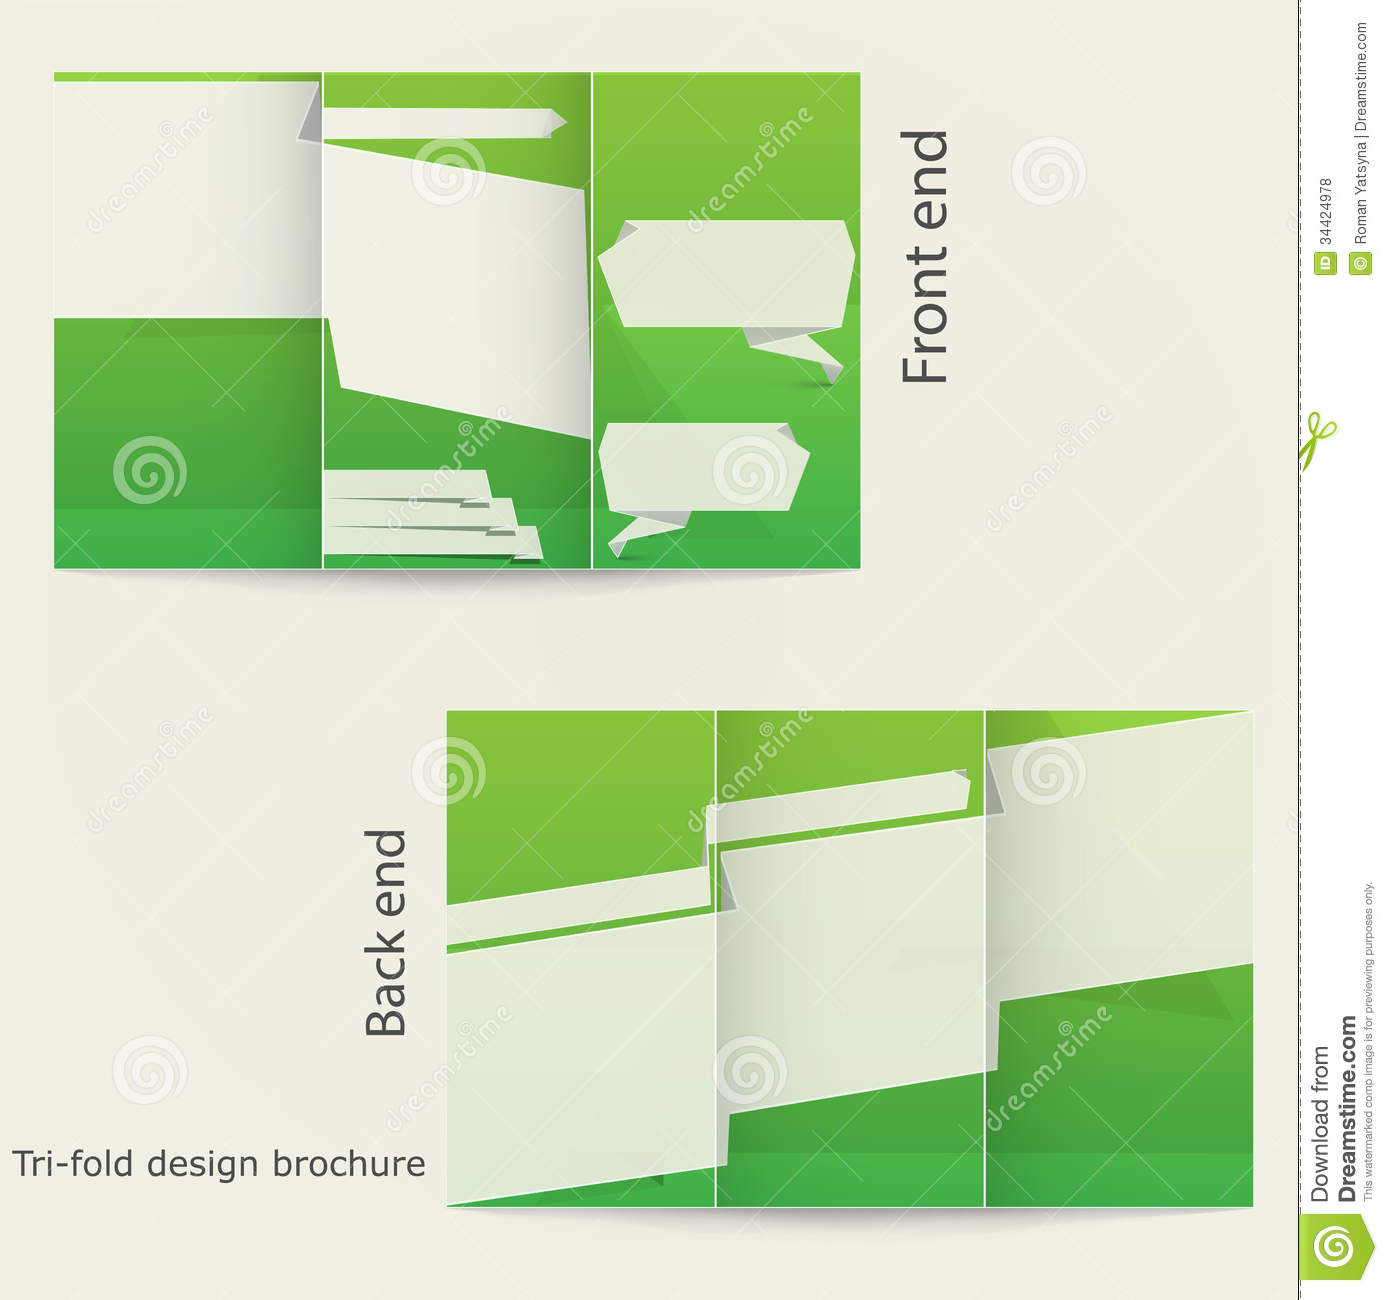 12 tri fold brochure template design images tri fold for Trifold brochure template free